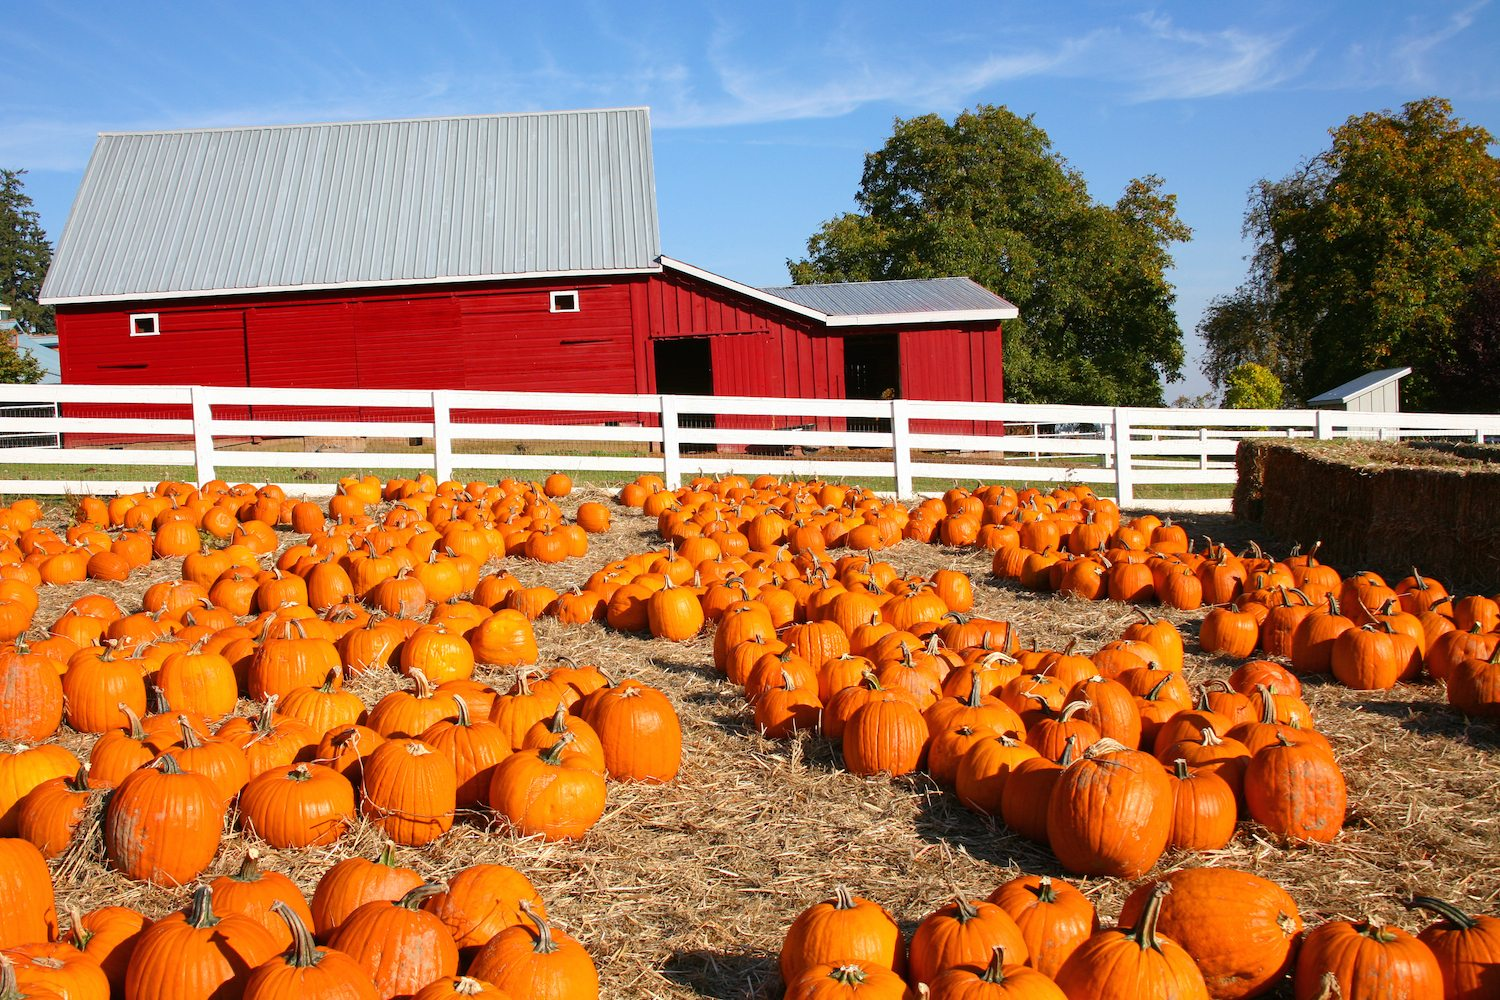 Fall Harvest Computer Wallpaper Largest Pumpkin Patches In The U S Drive The Nation